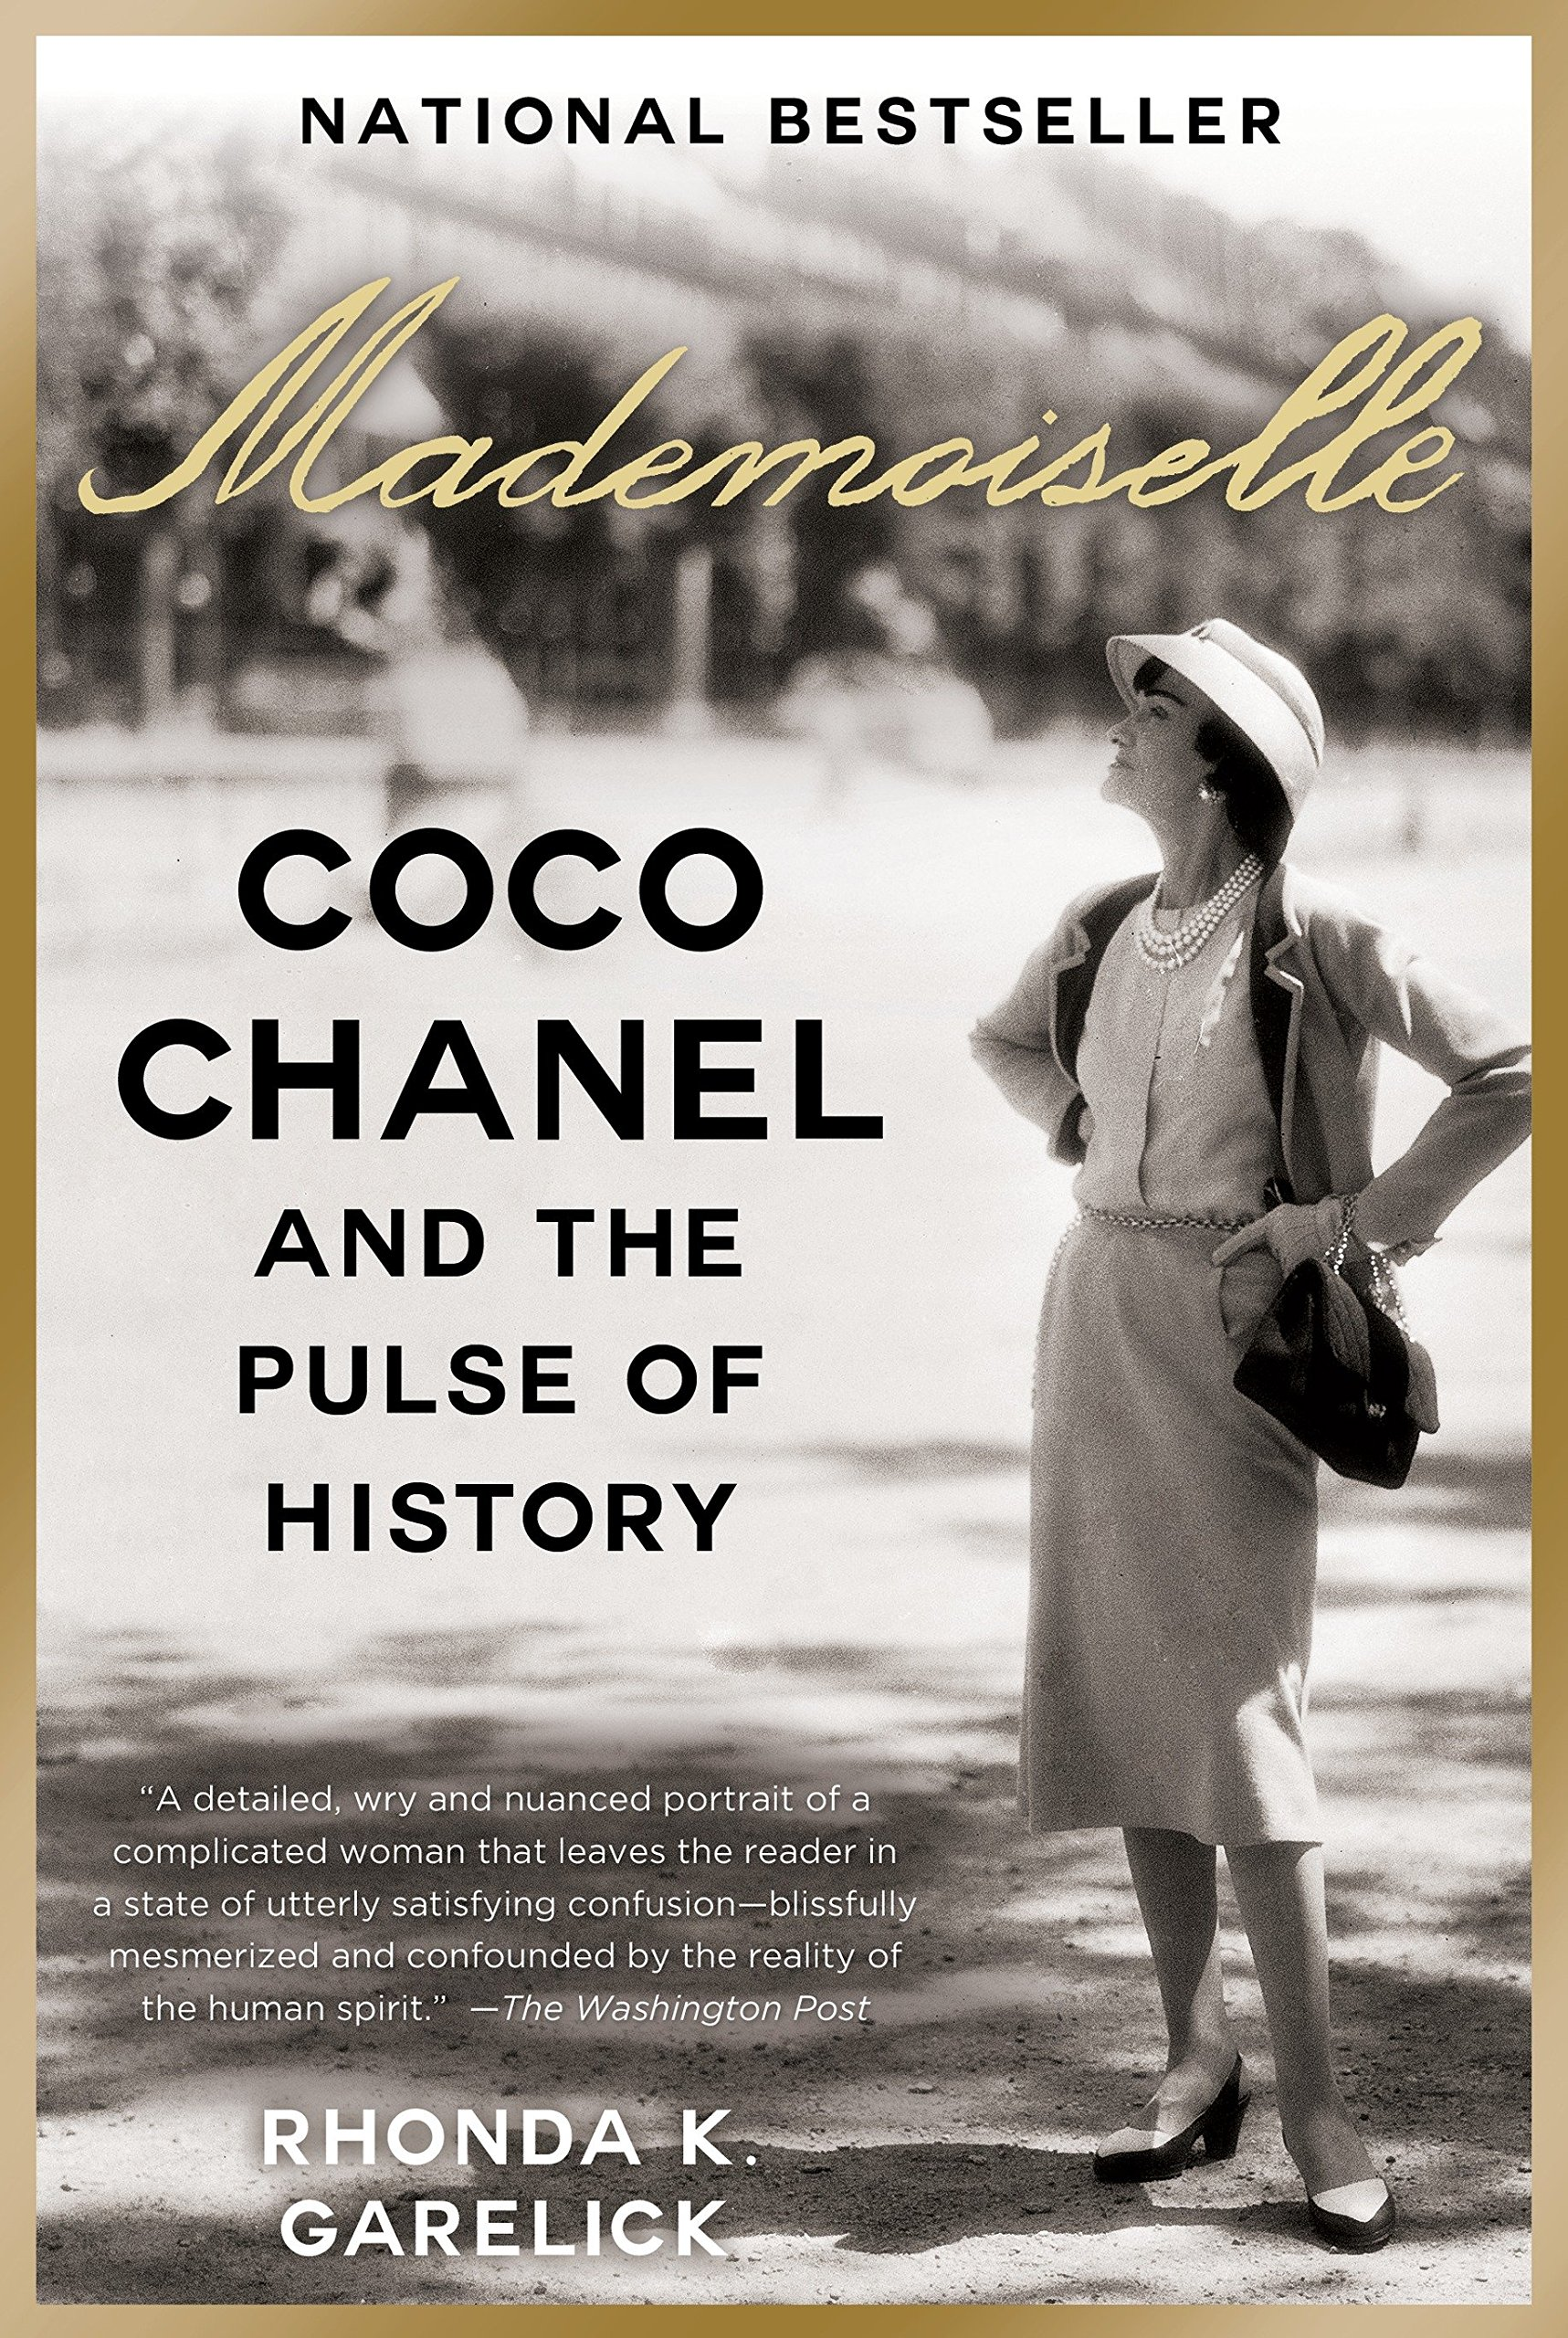 The Gospel According To Coco Chanel Pdf